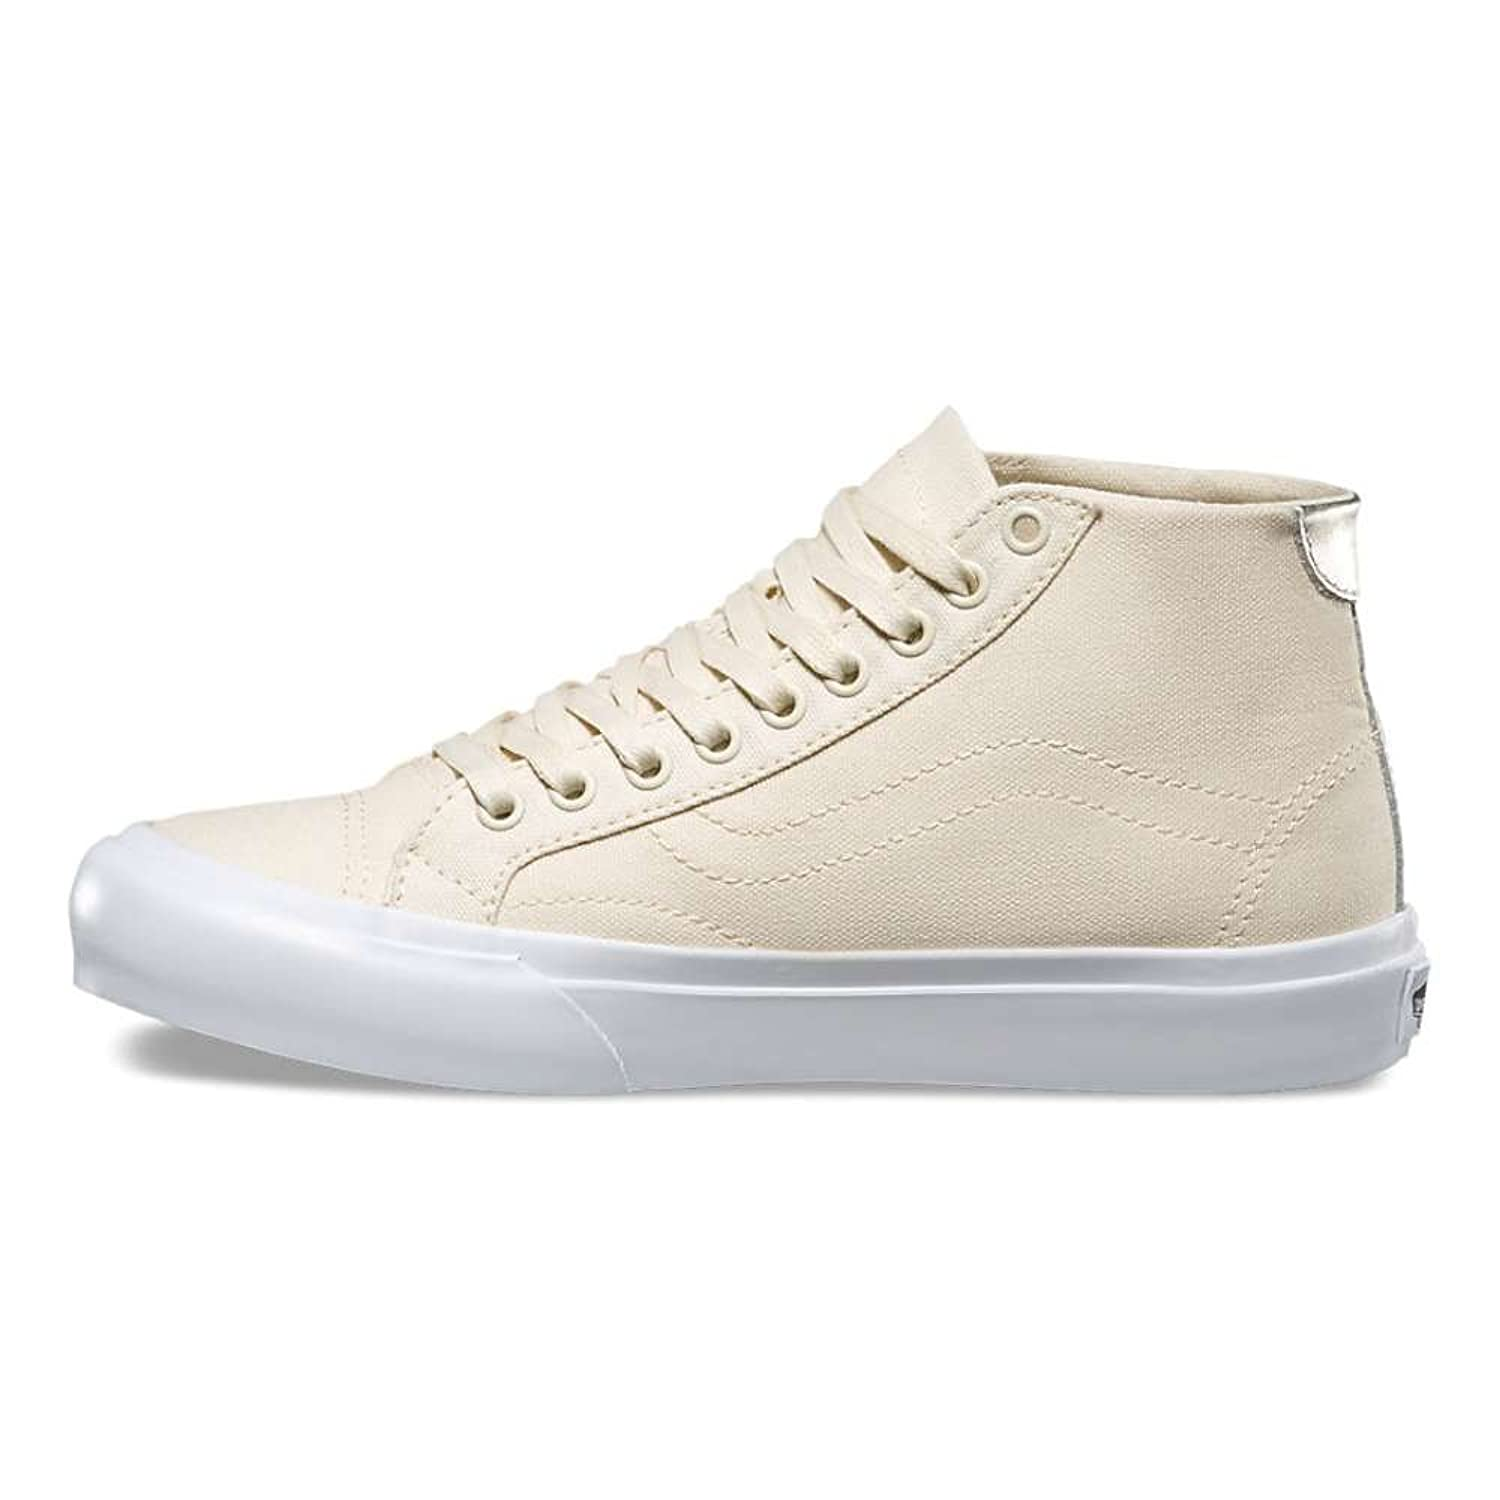 Vans Mens Court Mid Canvas Low Top Lace Up Fashion Sneakers Beige Size 7.0